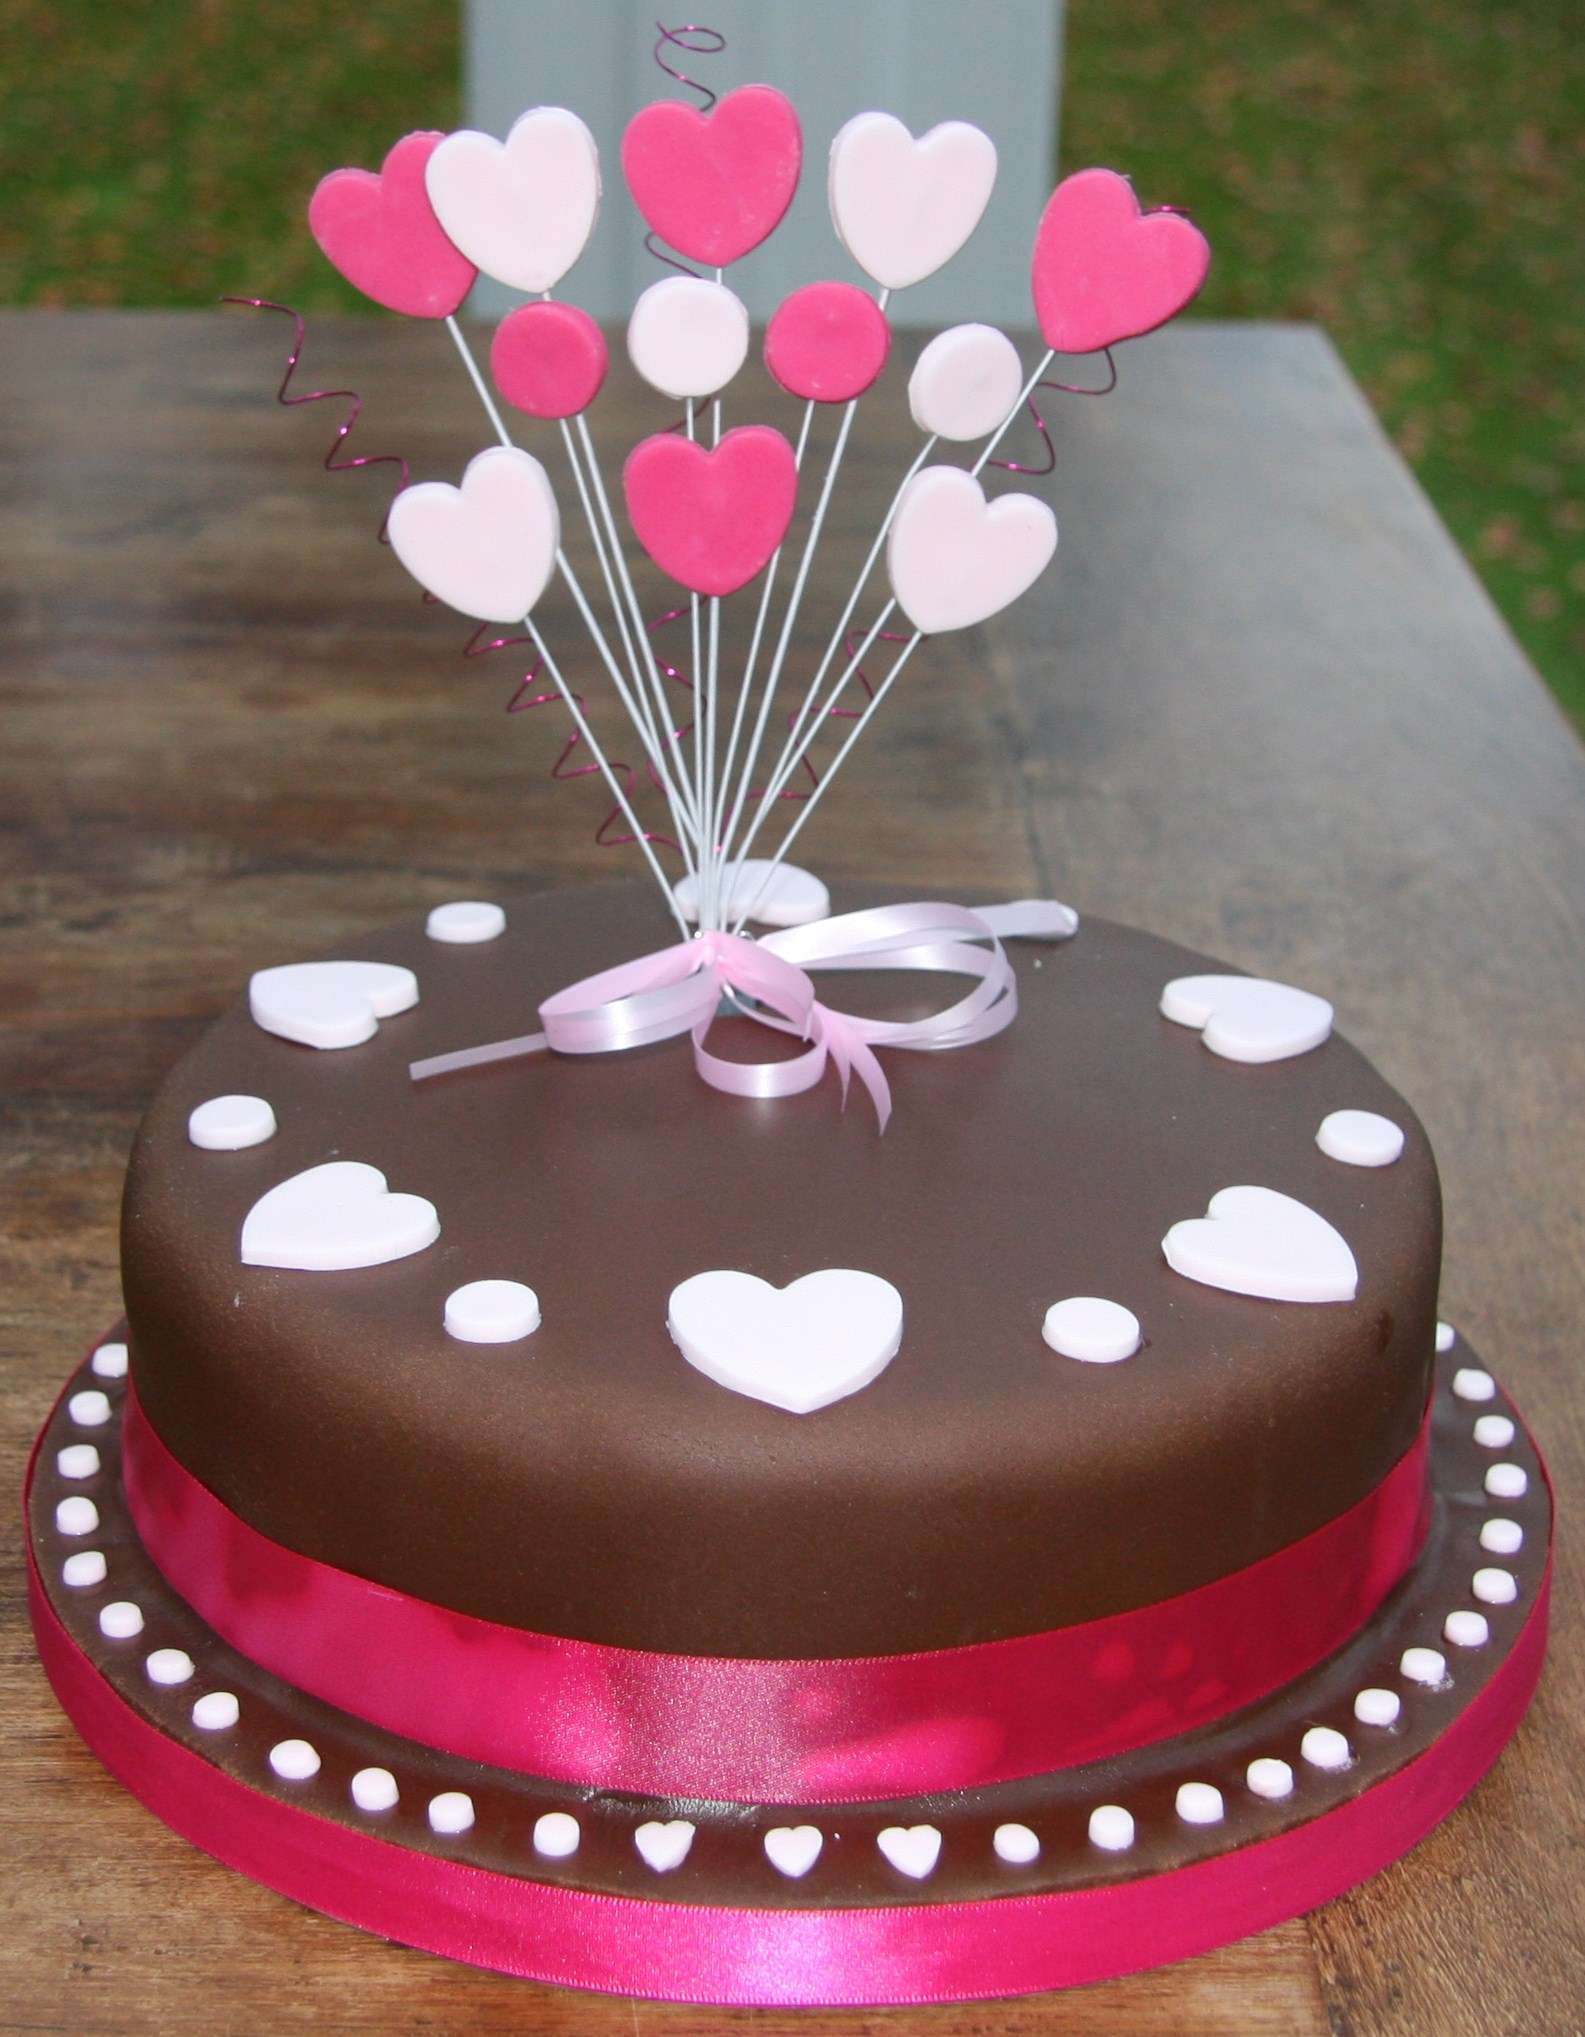 Cake Designs Of Birthday : Chocolate Birthday Cake with Hearts   lovinghomemade